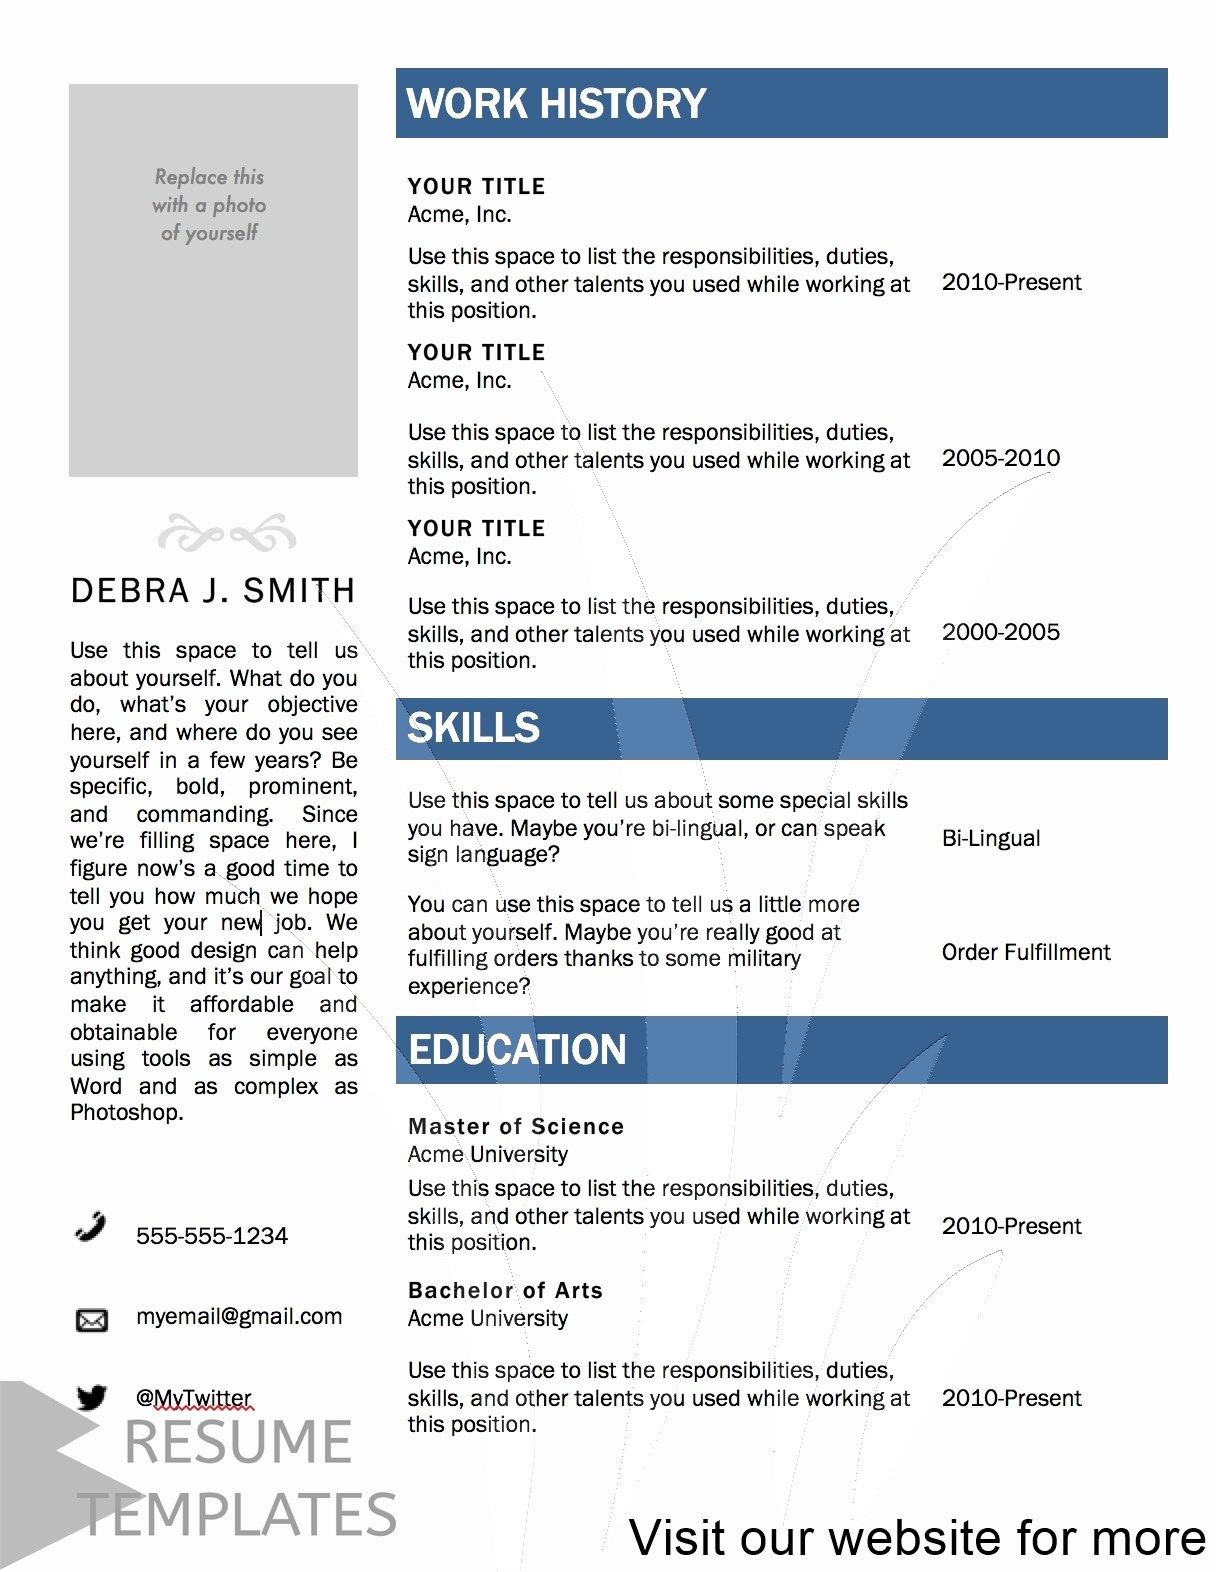 resume template free psd in 2020 Resume template free